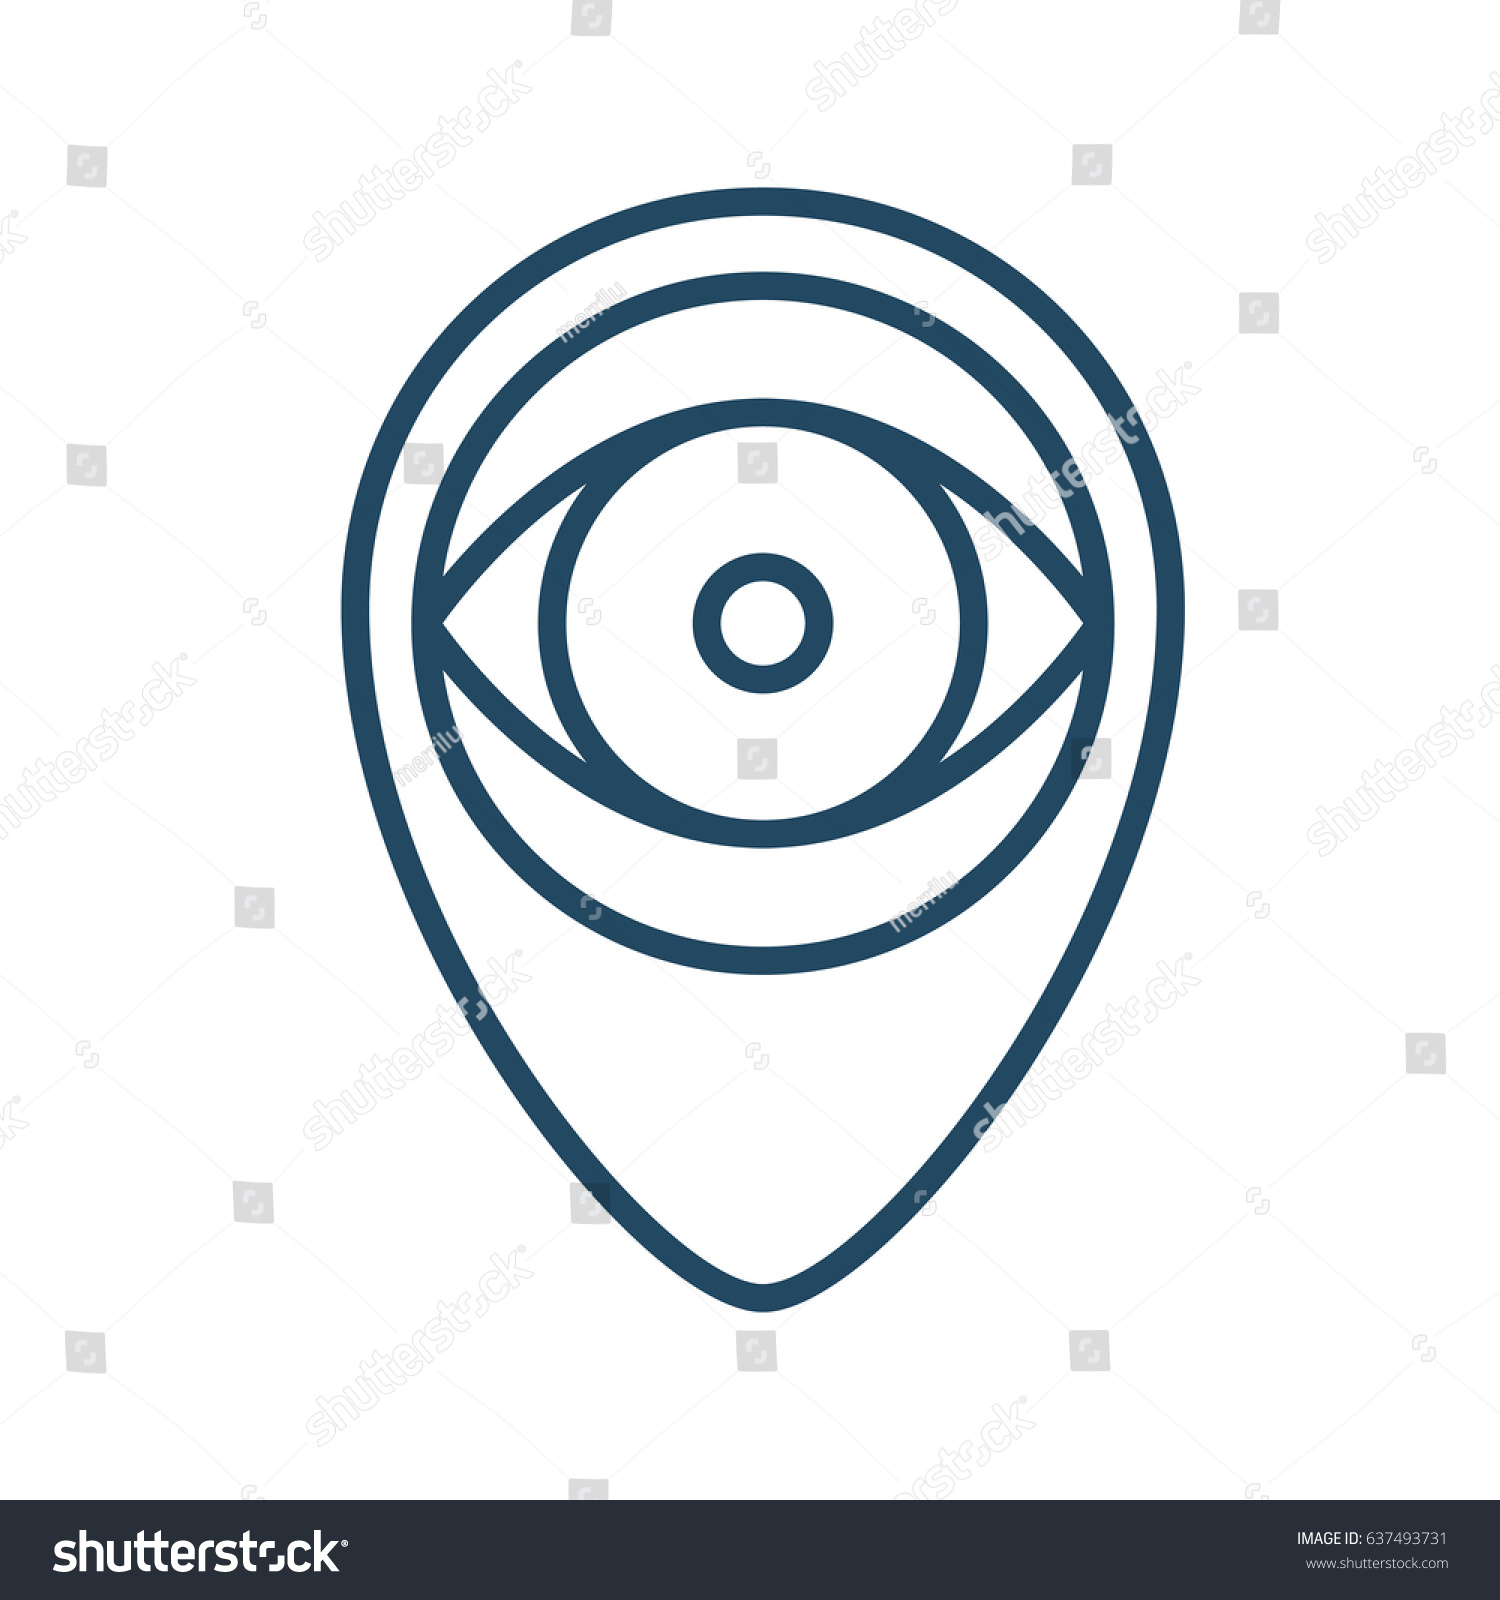 Eye Inside Pin Vector Icon Meaning Stock Vector Royalty Free